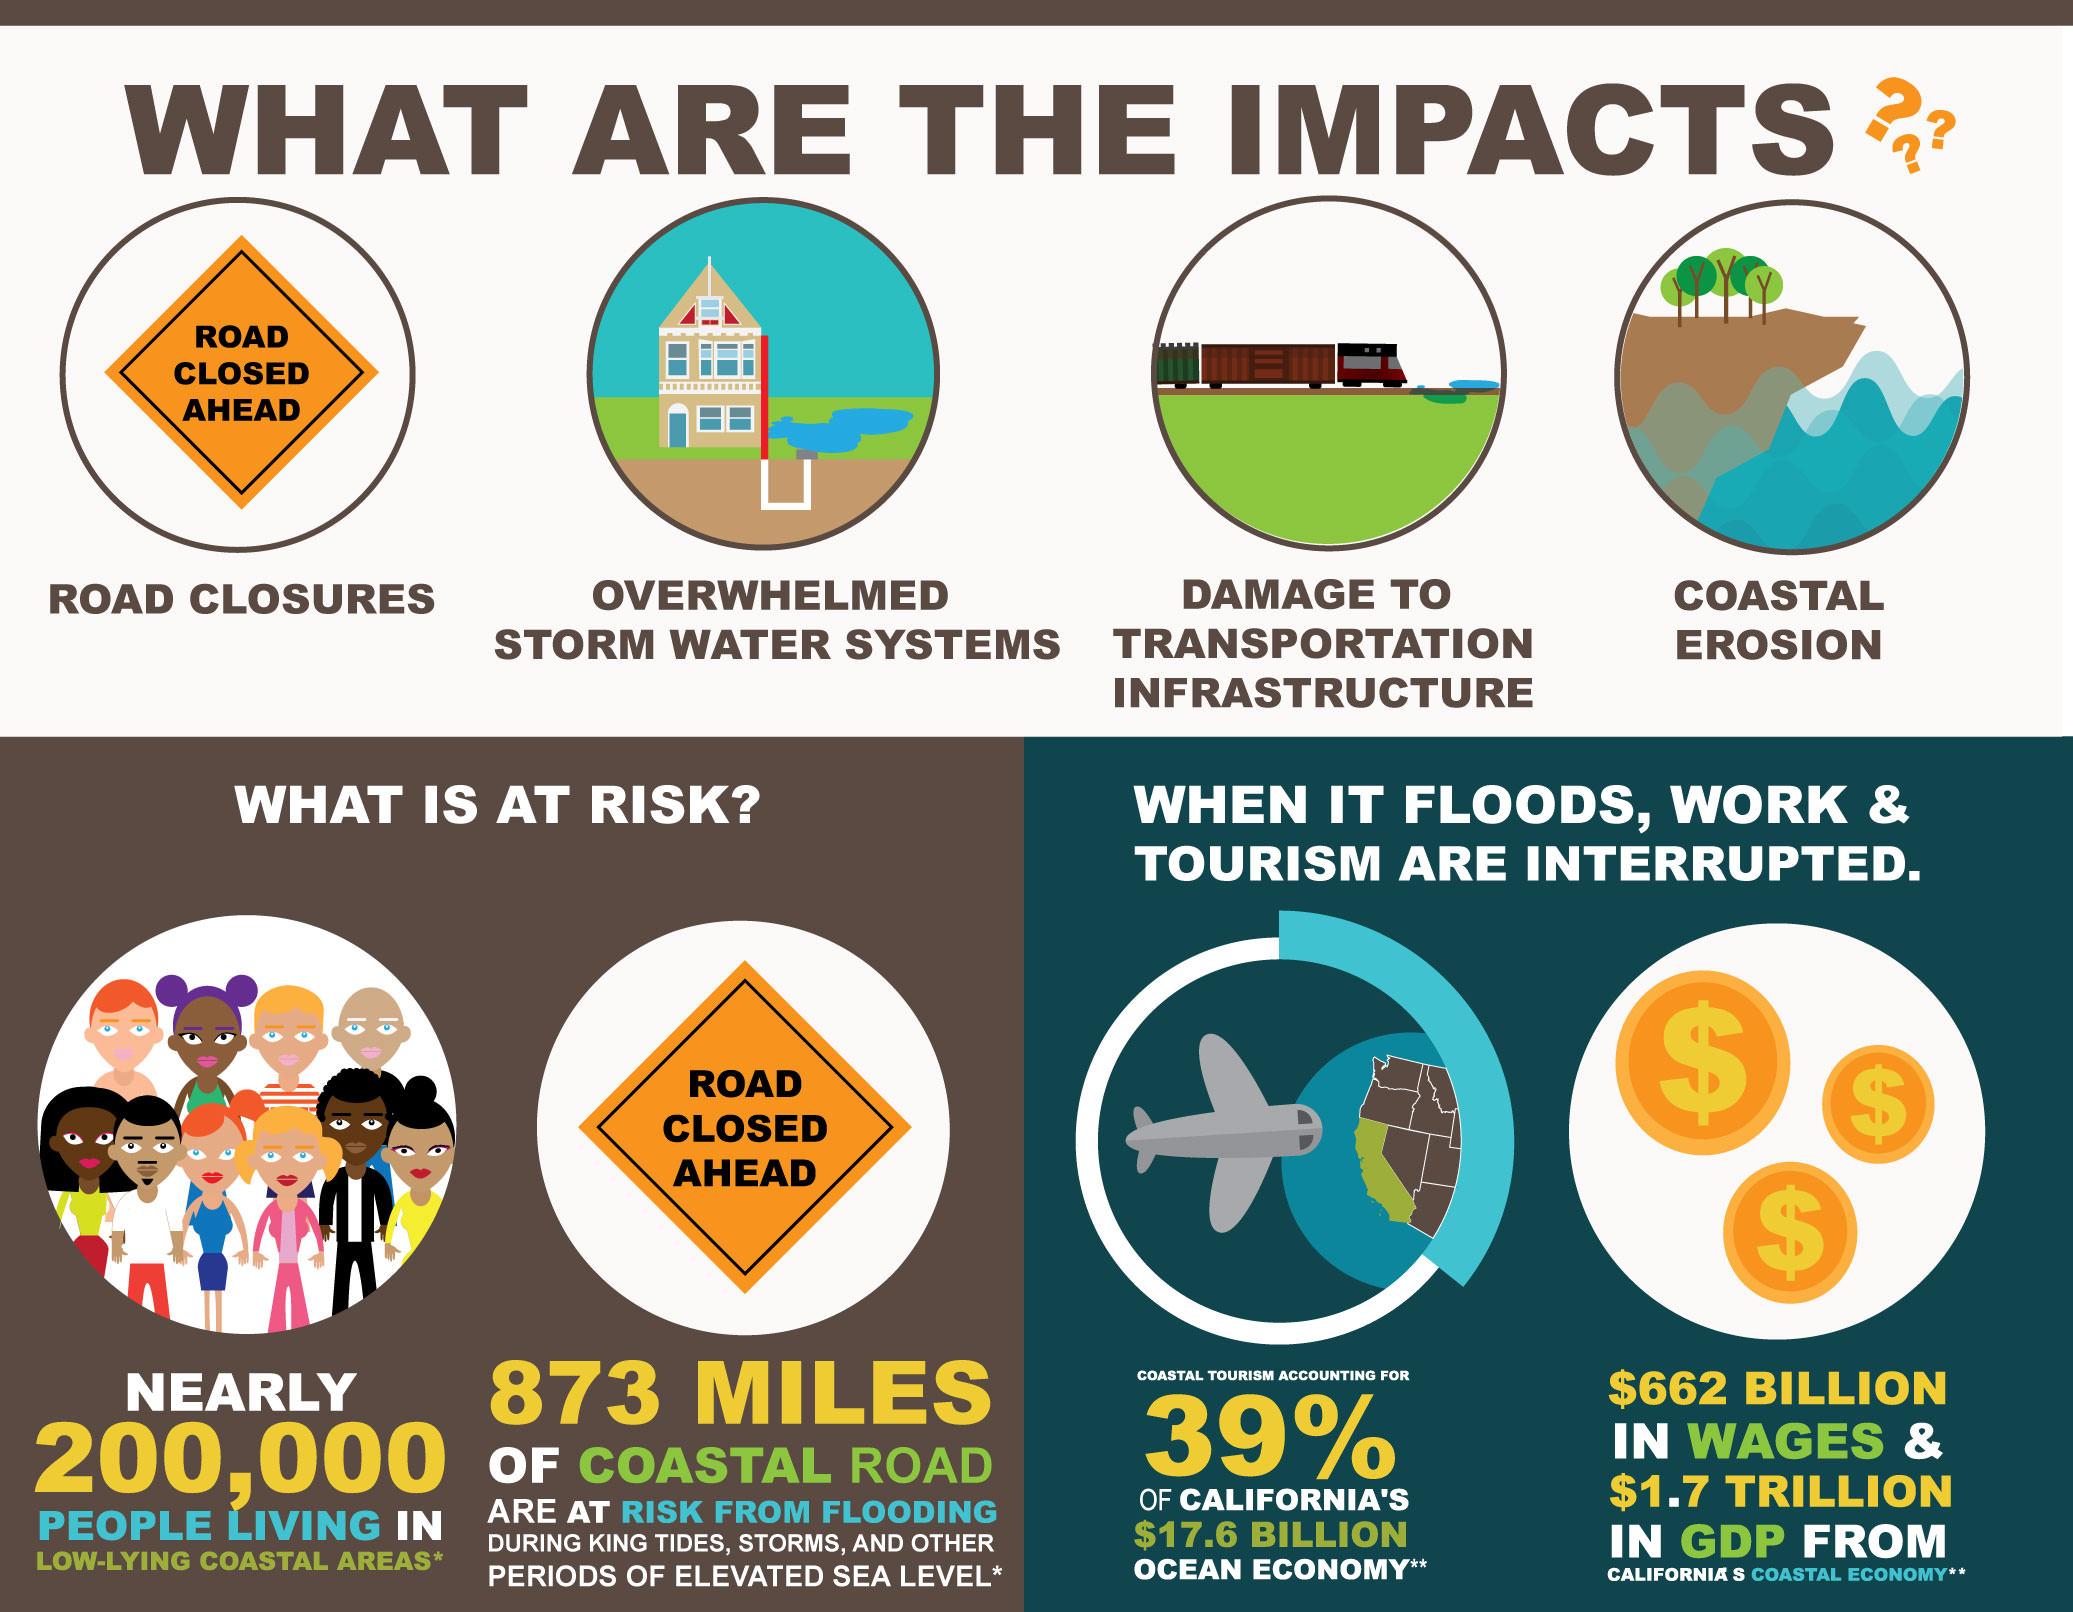 Graphic showing the impacts of nuisance flooding, including road closures, overwhelmed storm water systems, transporation infrastructure, and coastal erosion. Nearly 200,000 Californians live in low-lying coastal areas and 873 miles of coastal roads are at risk from flooding during King Tides, storms, and other periods of elevated sea level. When flooding occurs, work and tourism are also interrupted: coastal tourism accounts for 39 percent of California's $17.6 billion ocean economy; the state's coastal economy accounts for $662 billion in wages and $1.7 trillion in Gross Domestic Product.